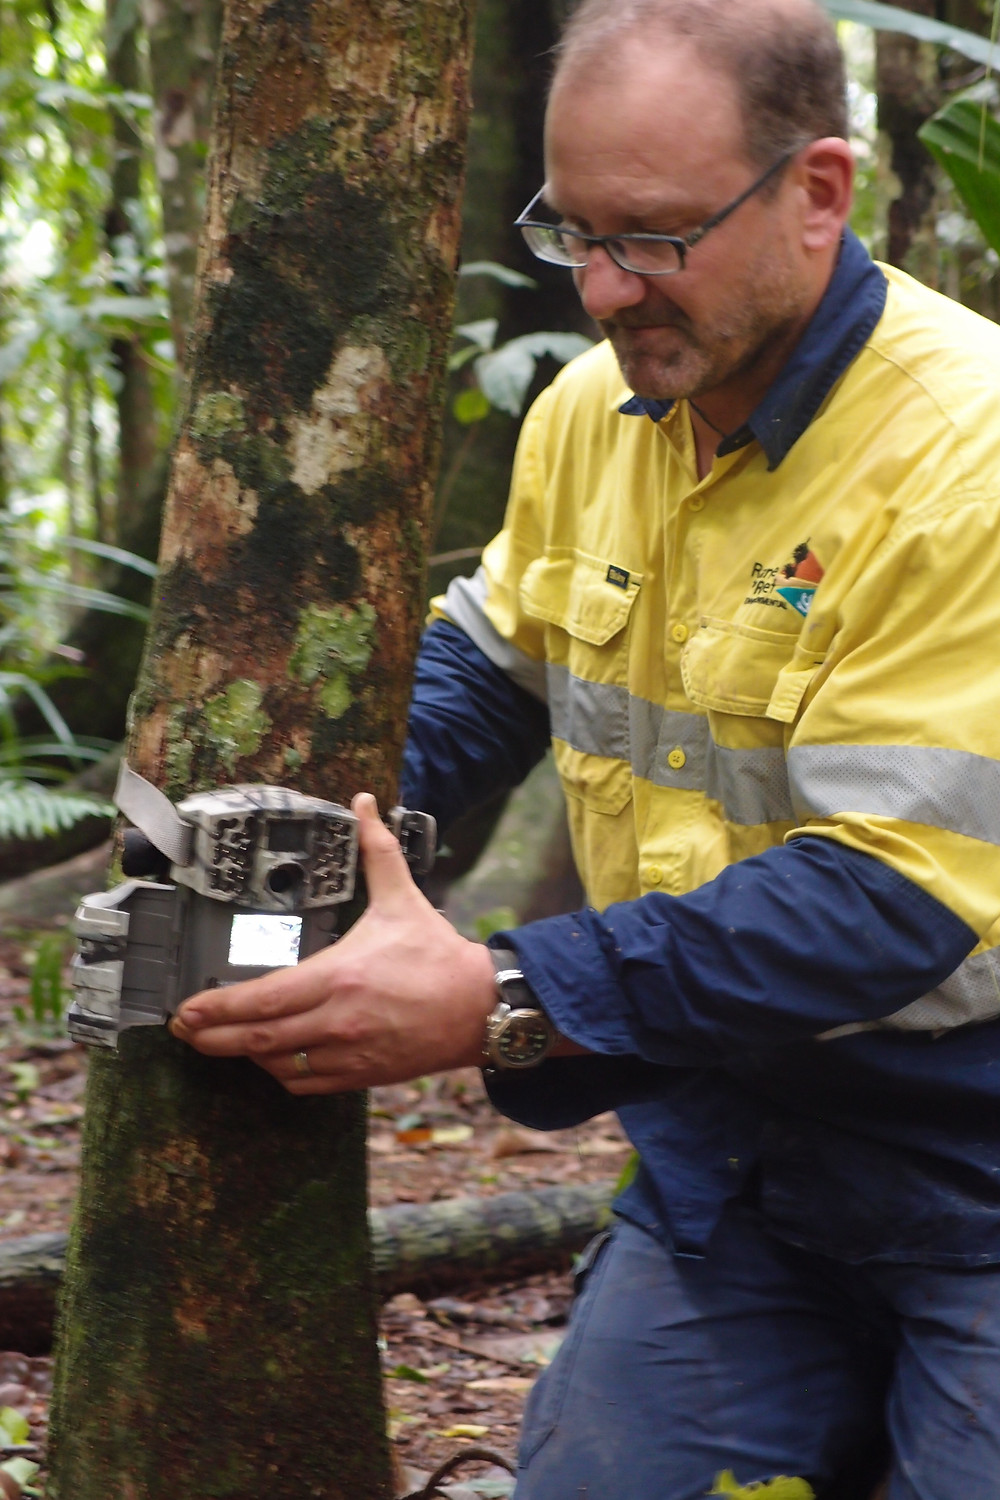 Rupert sets up a remote camera trap.